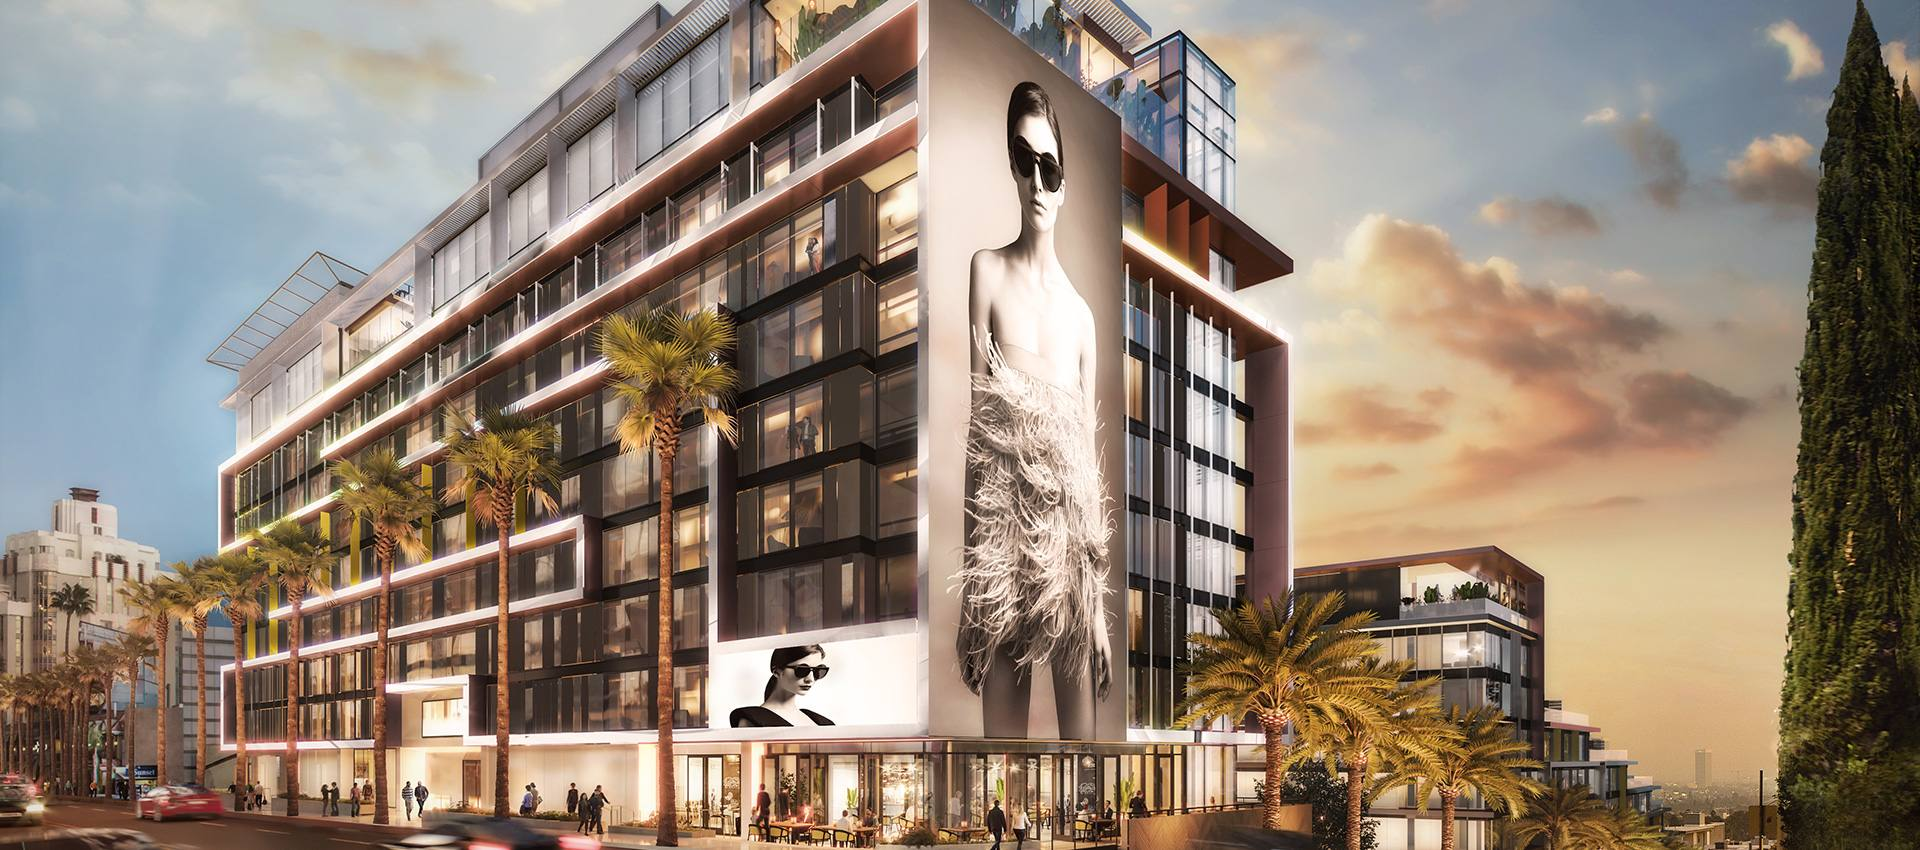 The Pendry West Hollywood will open at the old Sunset Strip site of the House of Blues.